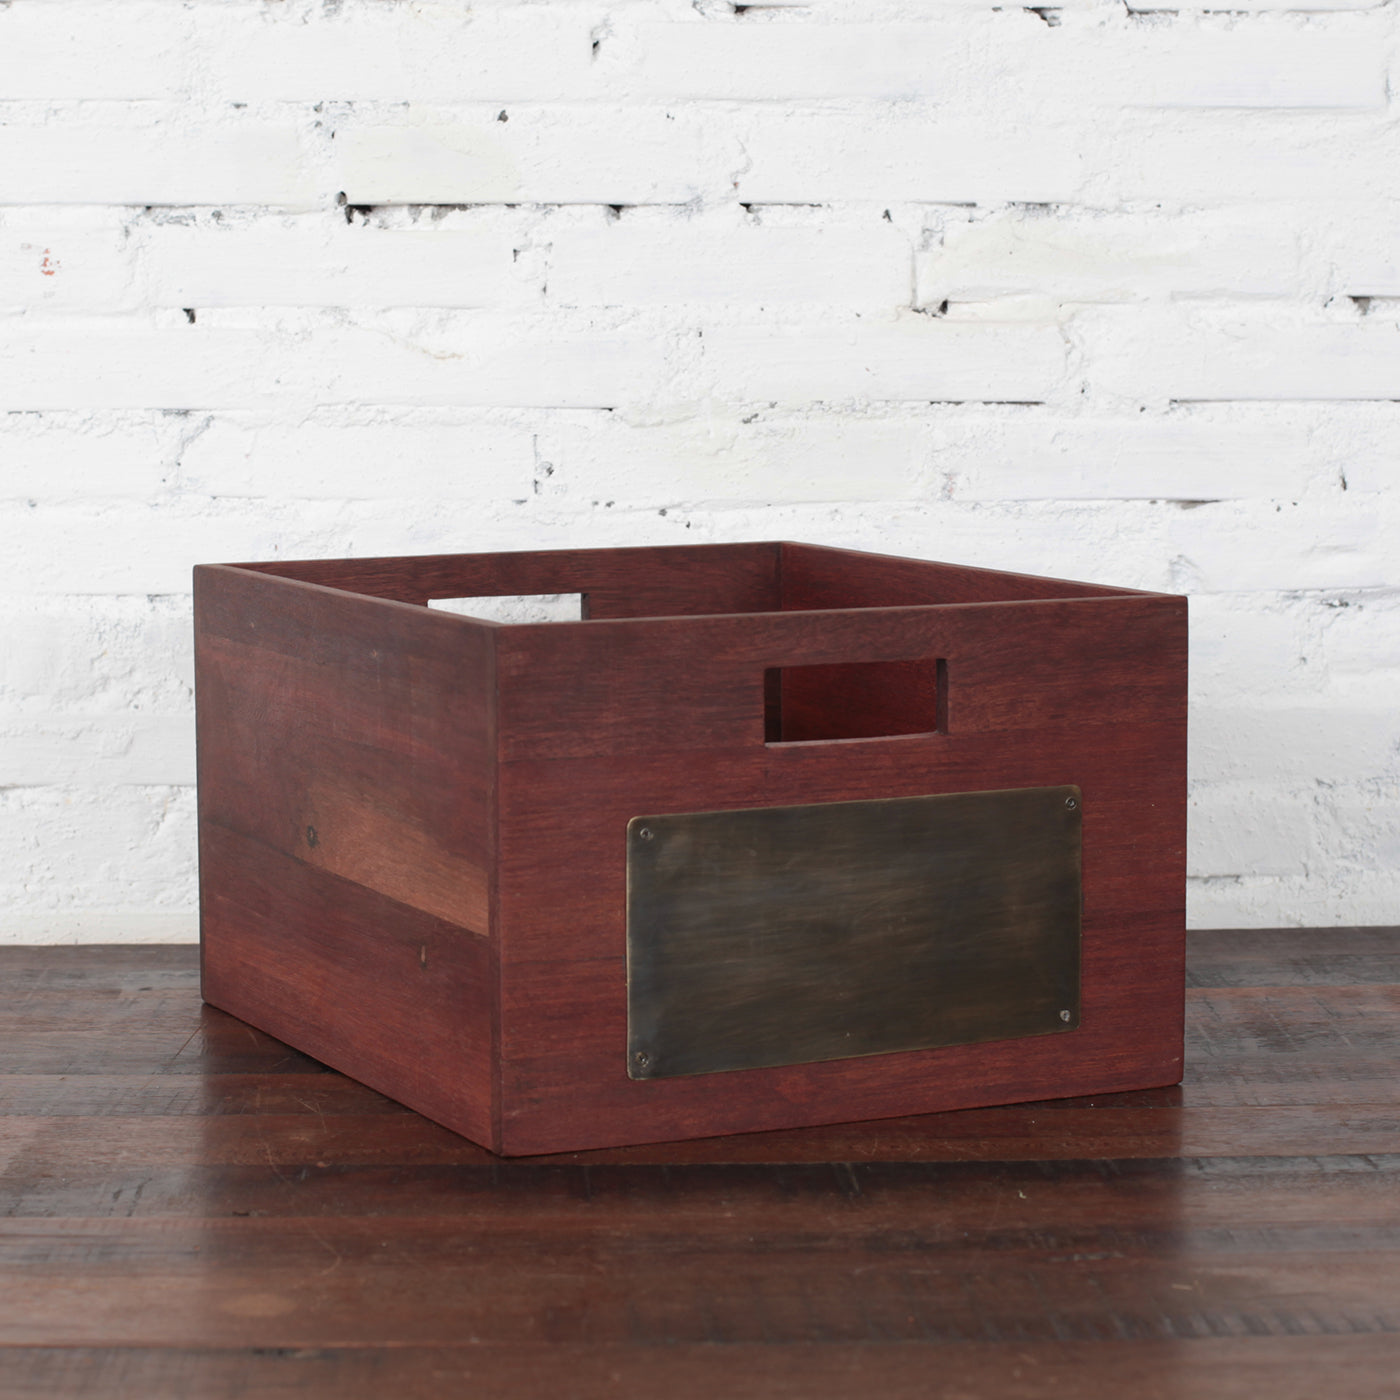 Yves Vintage Paper Crate